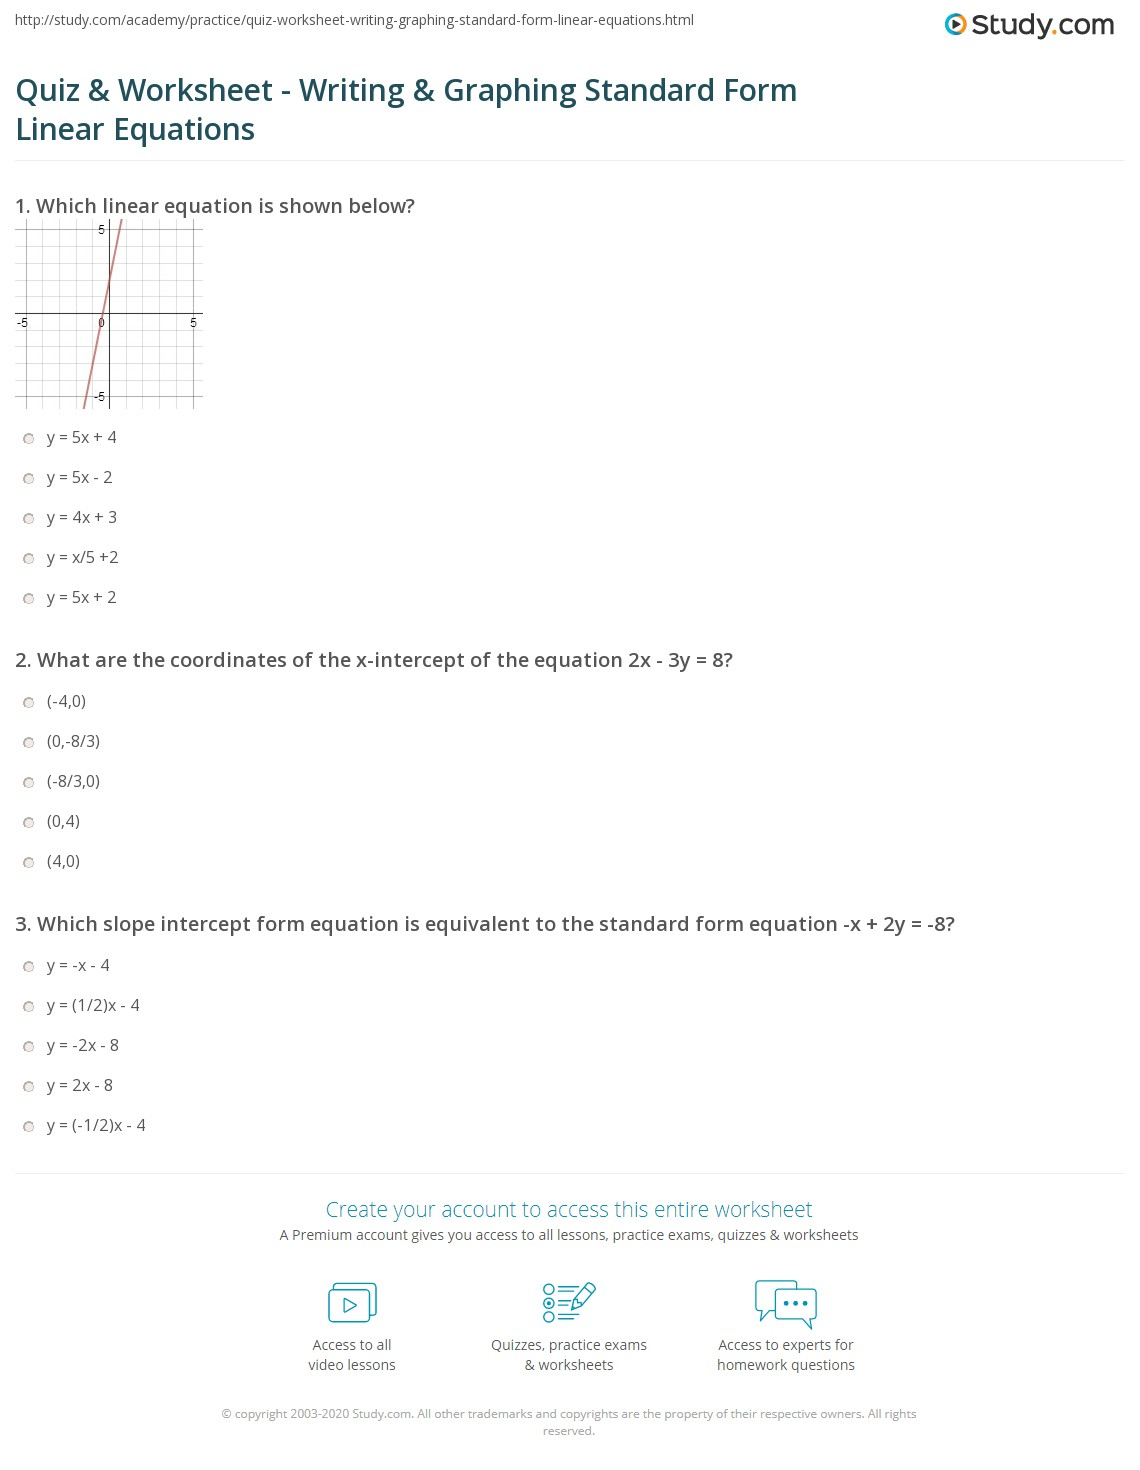 Quiz & Worksheet - Writing & Graphing Standard Form Linear ...